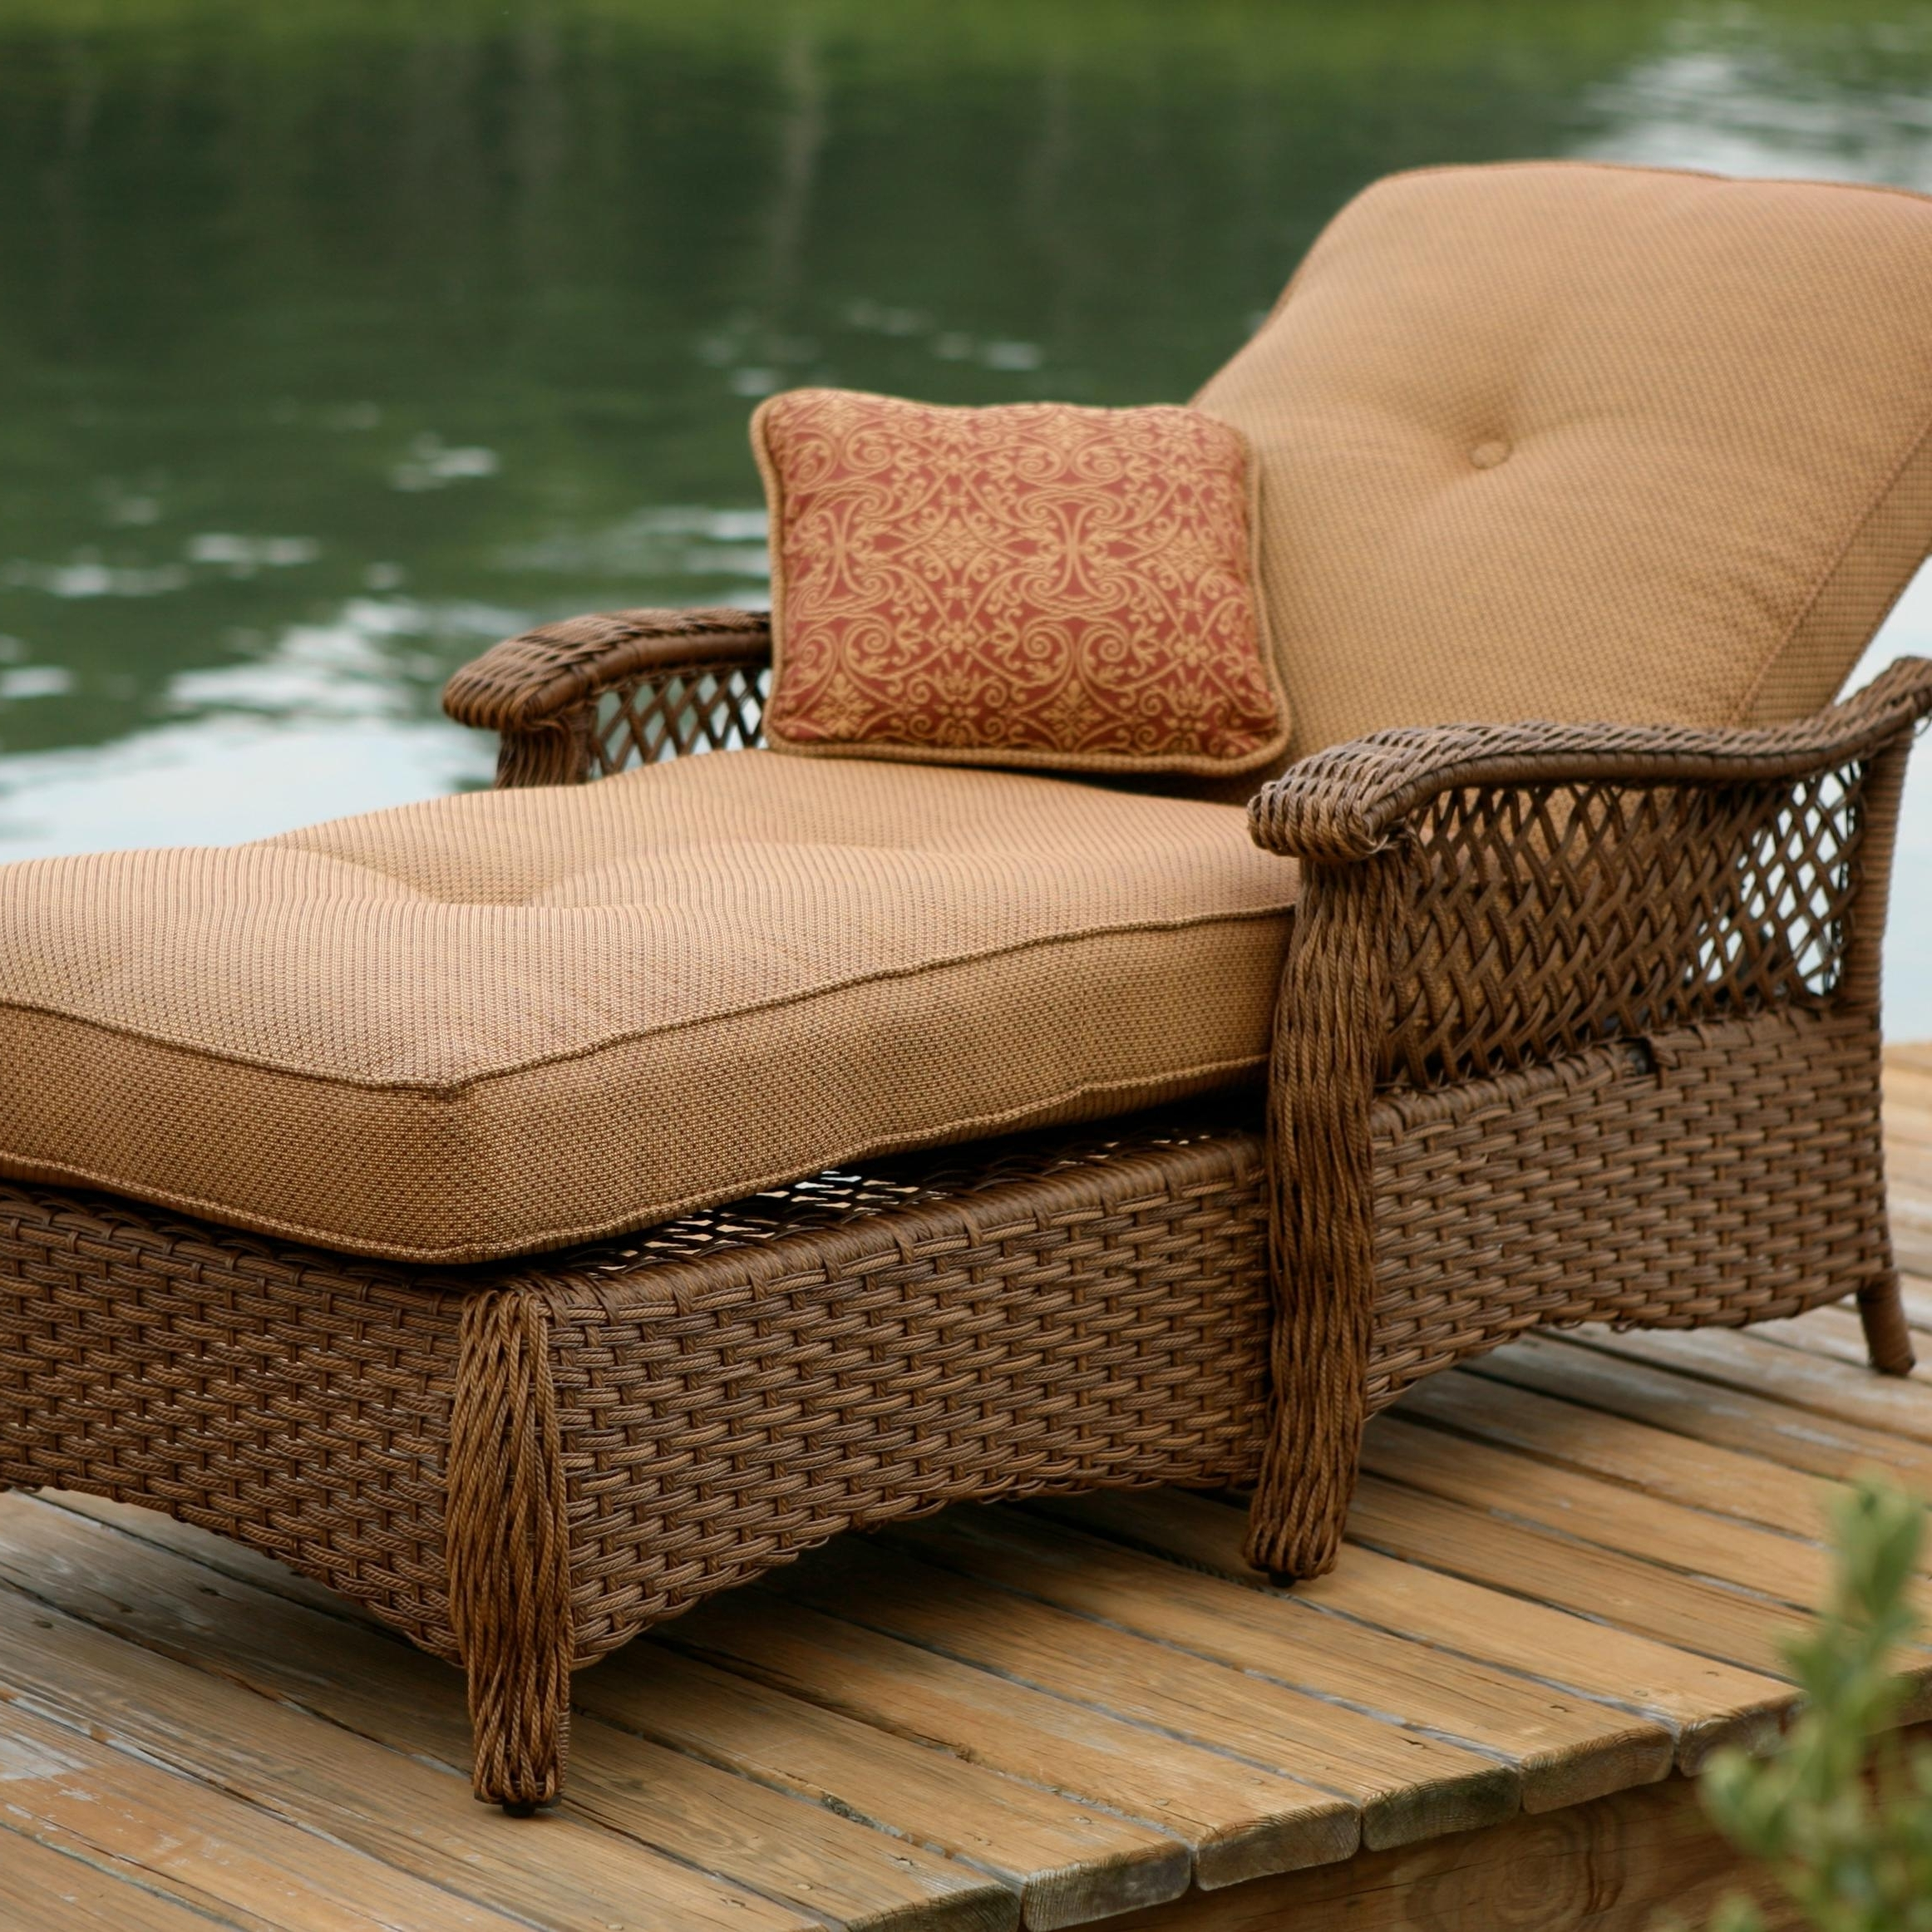 Trendy Outdoor Lounge Chaises Pertaining To Comfortable Wicker Outdoor Lounge Chaise With Brown Cushion And (View 13 of 15)